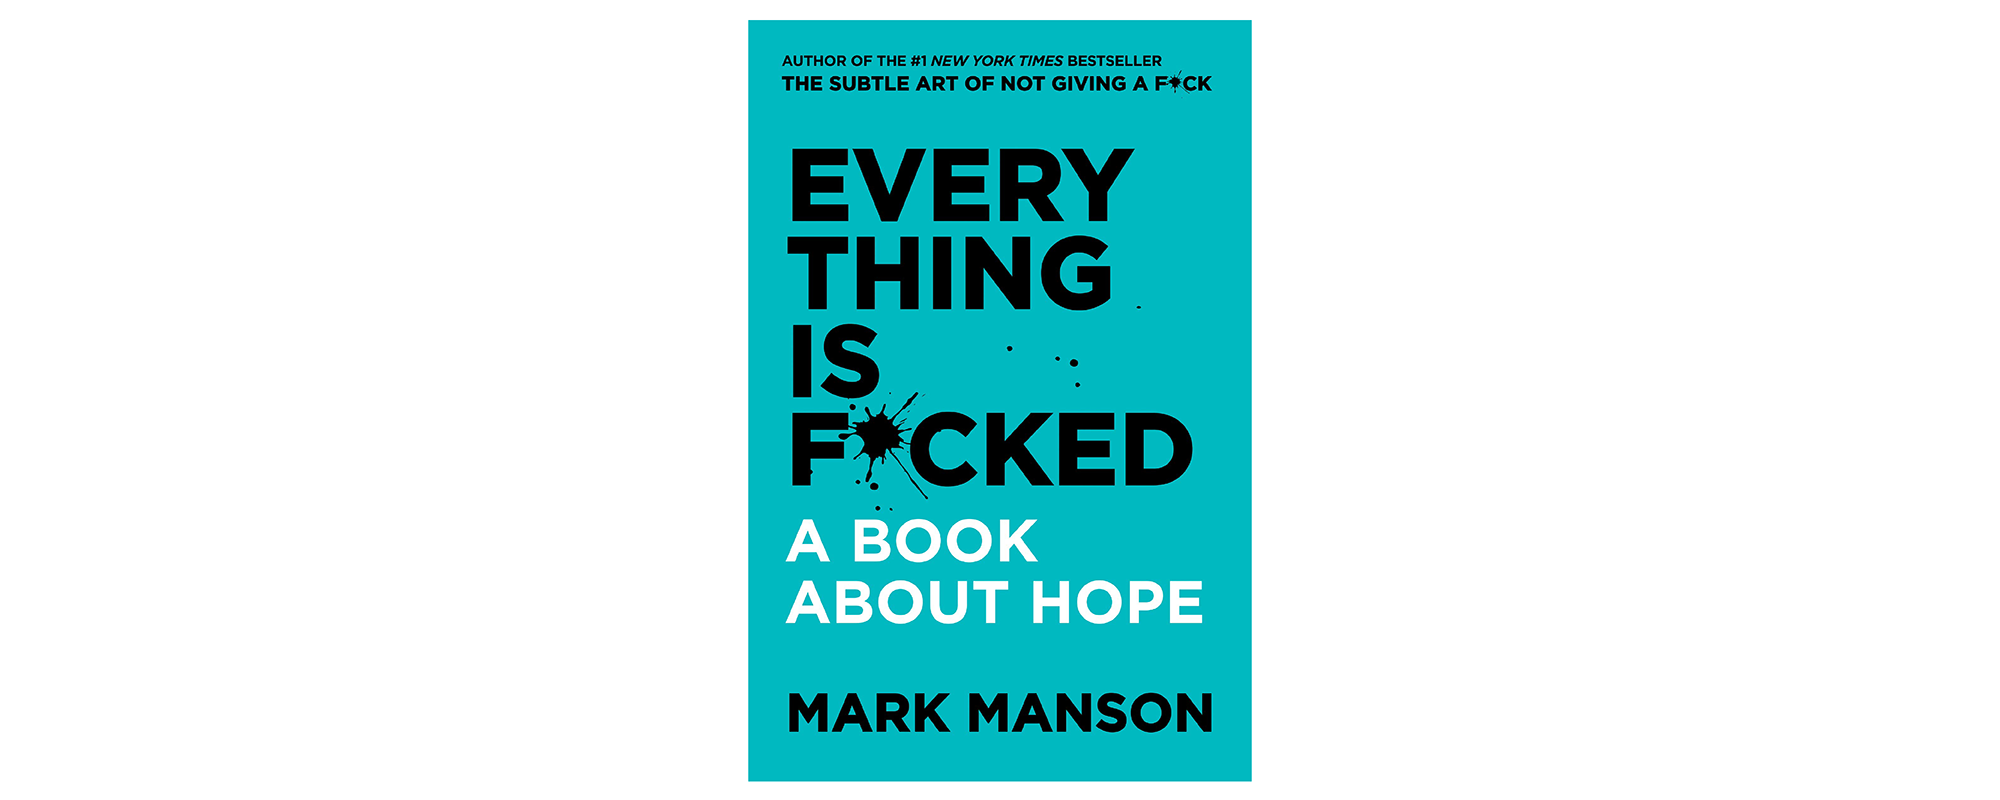 Everything is F*cked: A Book About Hope by Mark Manson